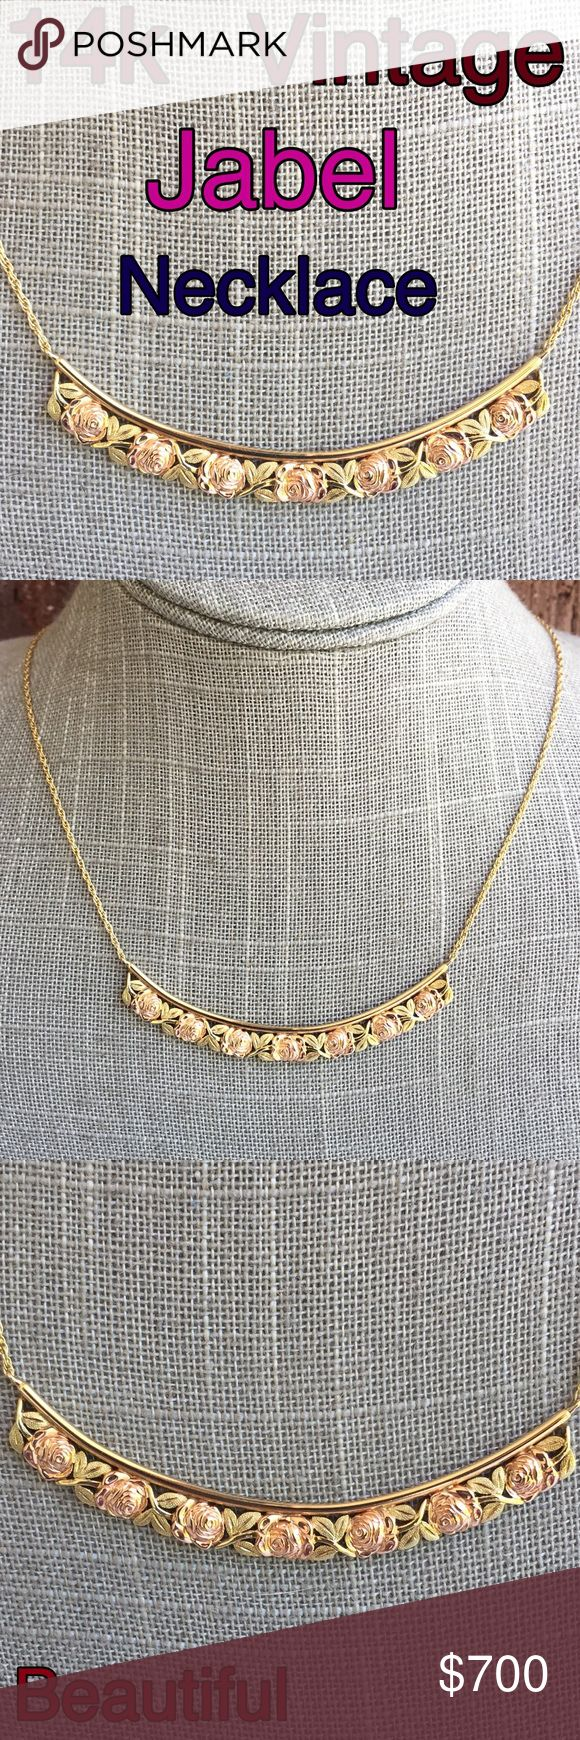 """14k Yellow/ Rose Gold Vintage Jabel Rose Necklace Amazing 14k Solid Yellow w/ Rose Gold Vintage Jabel Unique Design Rose Necklace. Measures 17.5"""" long. Weight 10.45 grams. Marked 14k Jabel. Preowned/ Preloved  May Show Slight Signs Of Being Worn. Listing Images Are Of The Item Being Offered. If you love unique vintage jewelry, this necklace is for you! Just Beautiful! Plz ask all ?'s b4 purchase. I ship same day. Buy w/ confidence 420+ 5 star feedback. Please make any reasonable offers using…"""